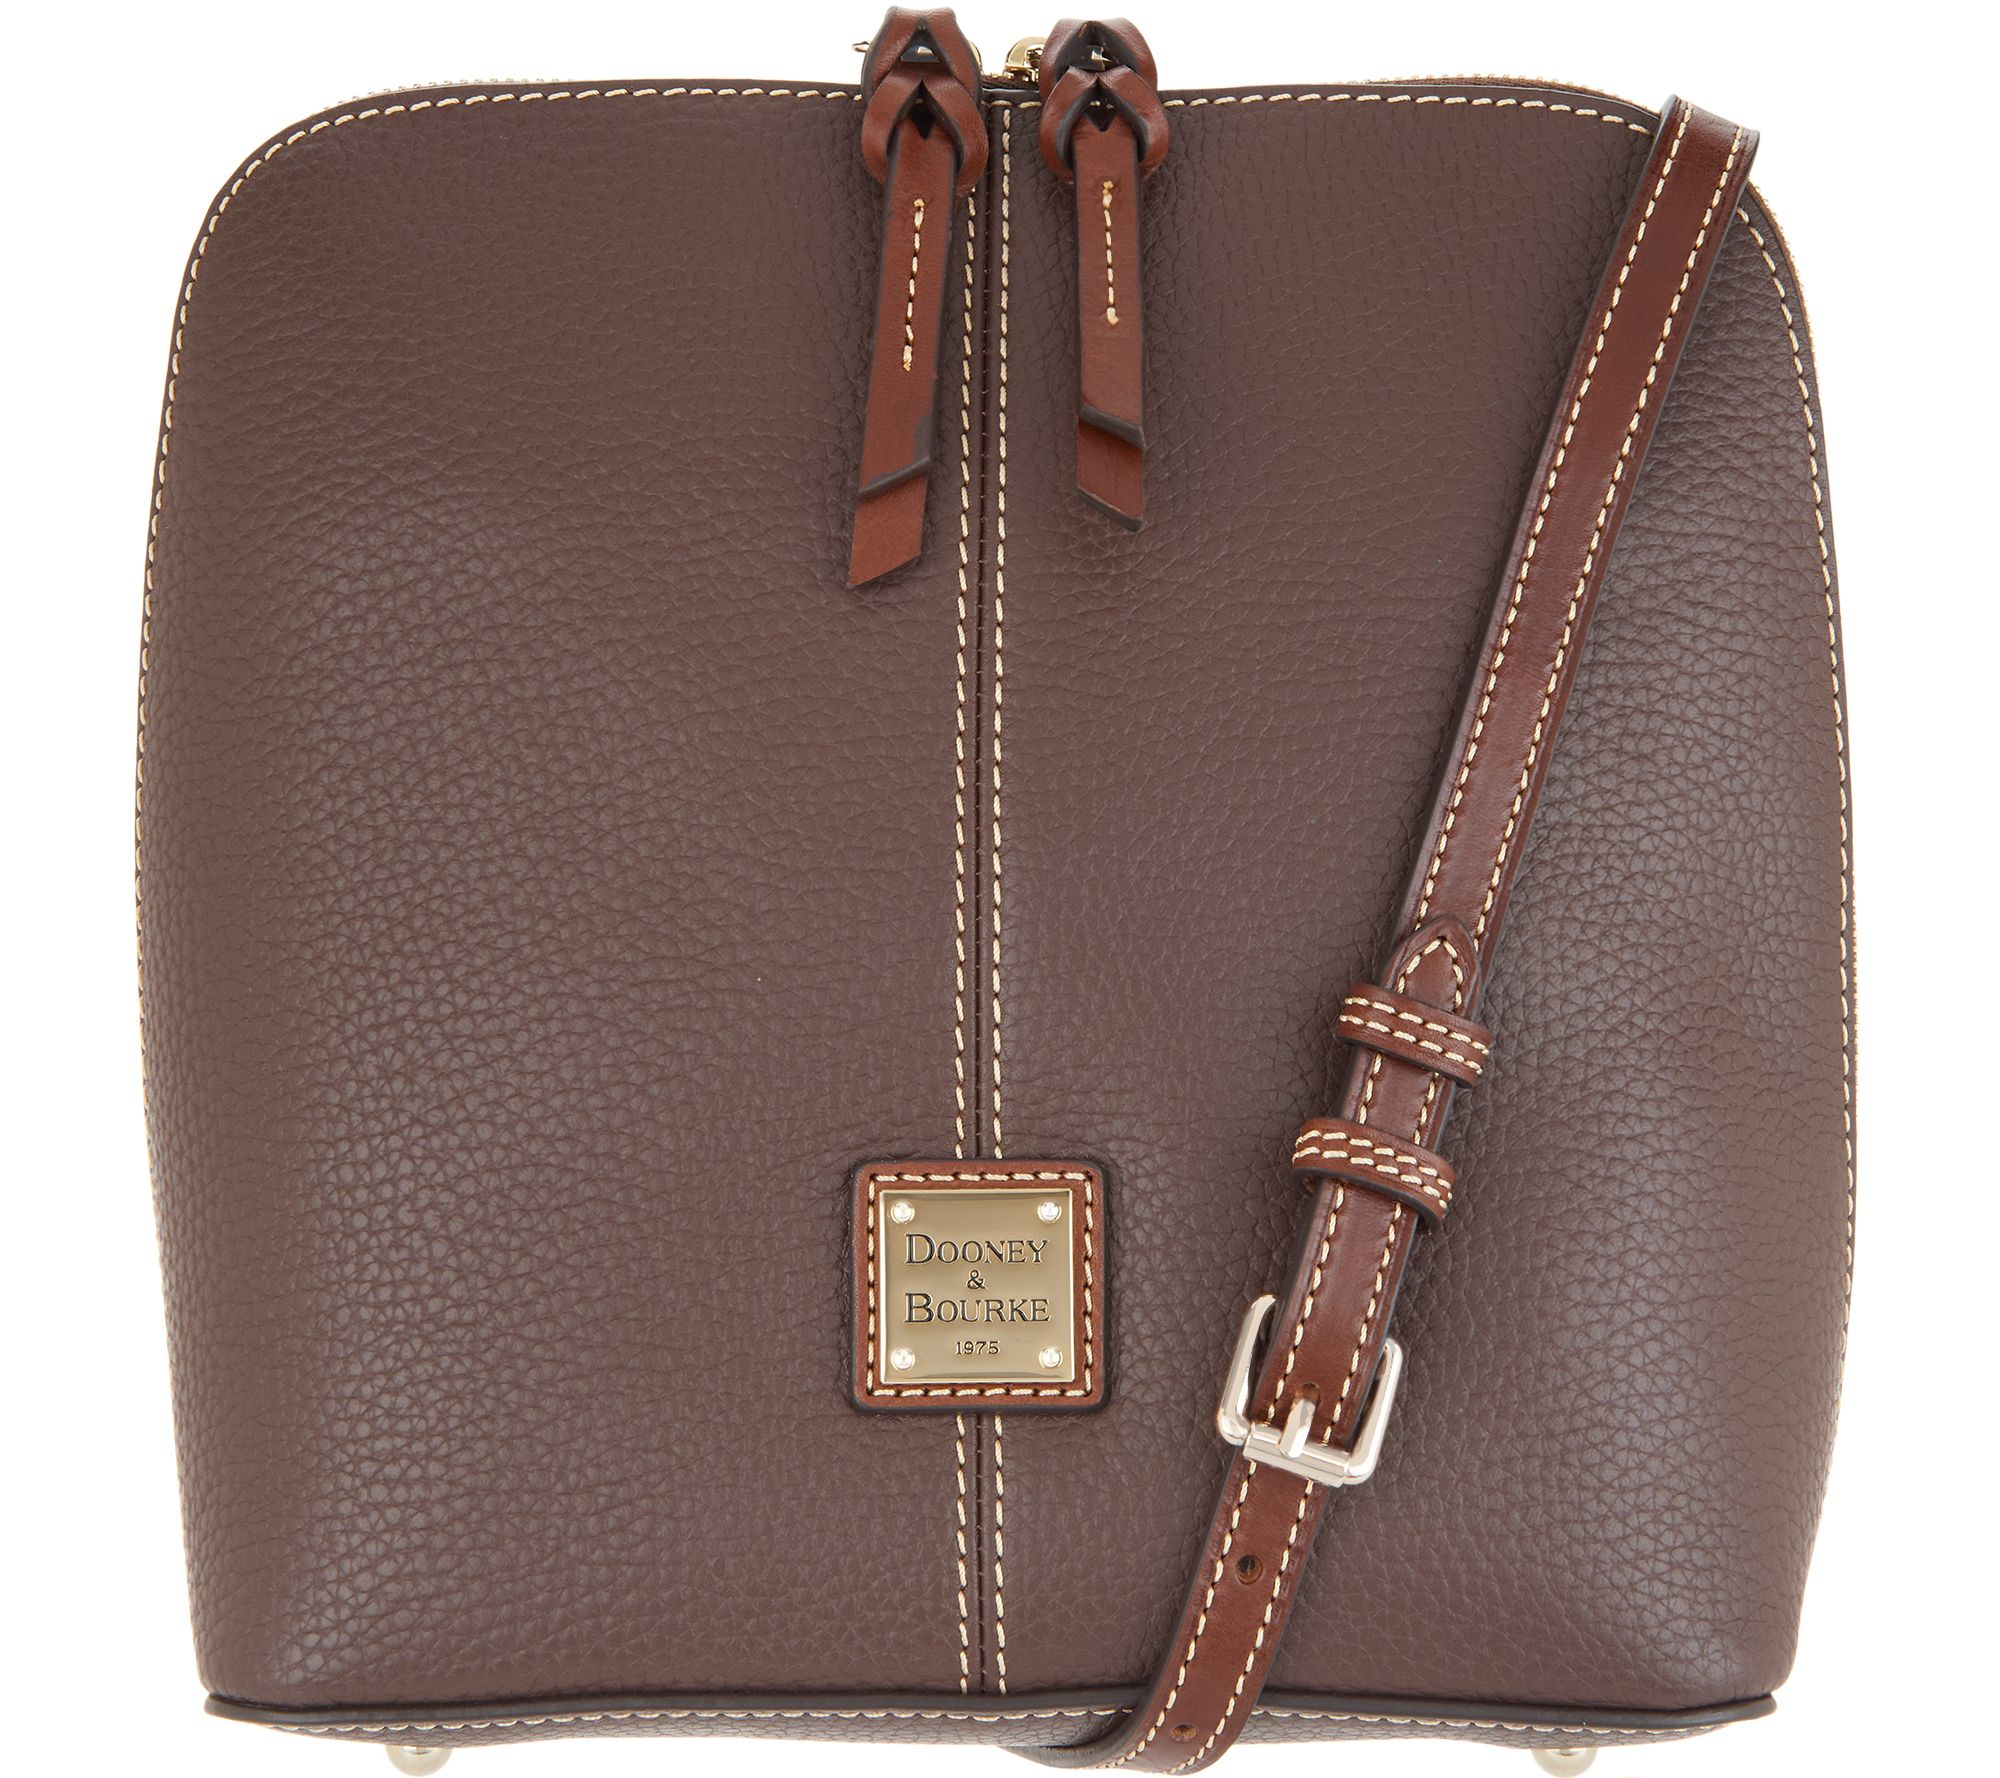 bbd201f64 Dooney & Bourke Pebble Leather Large Crossbody - Trixie - Page 1 — QVC.com